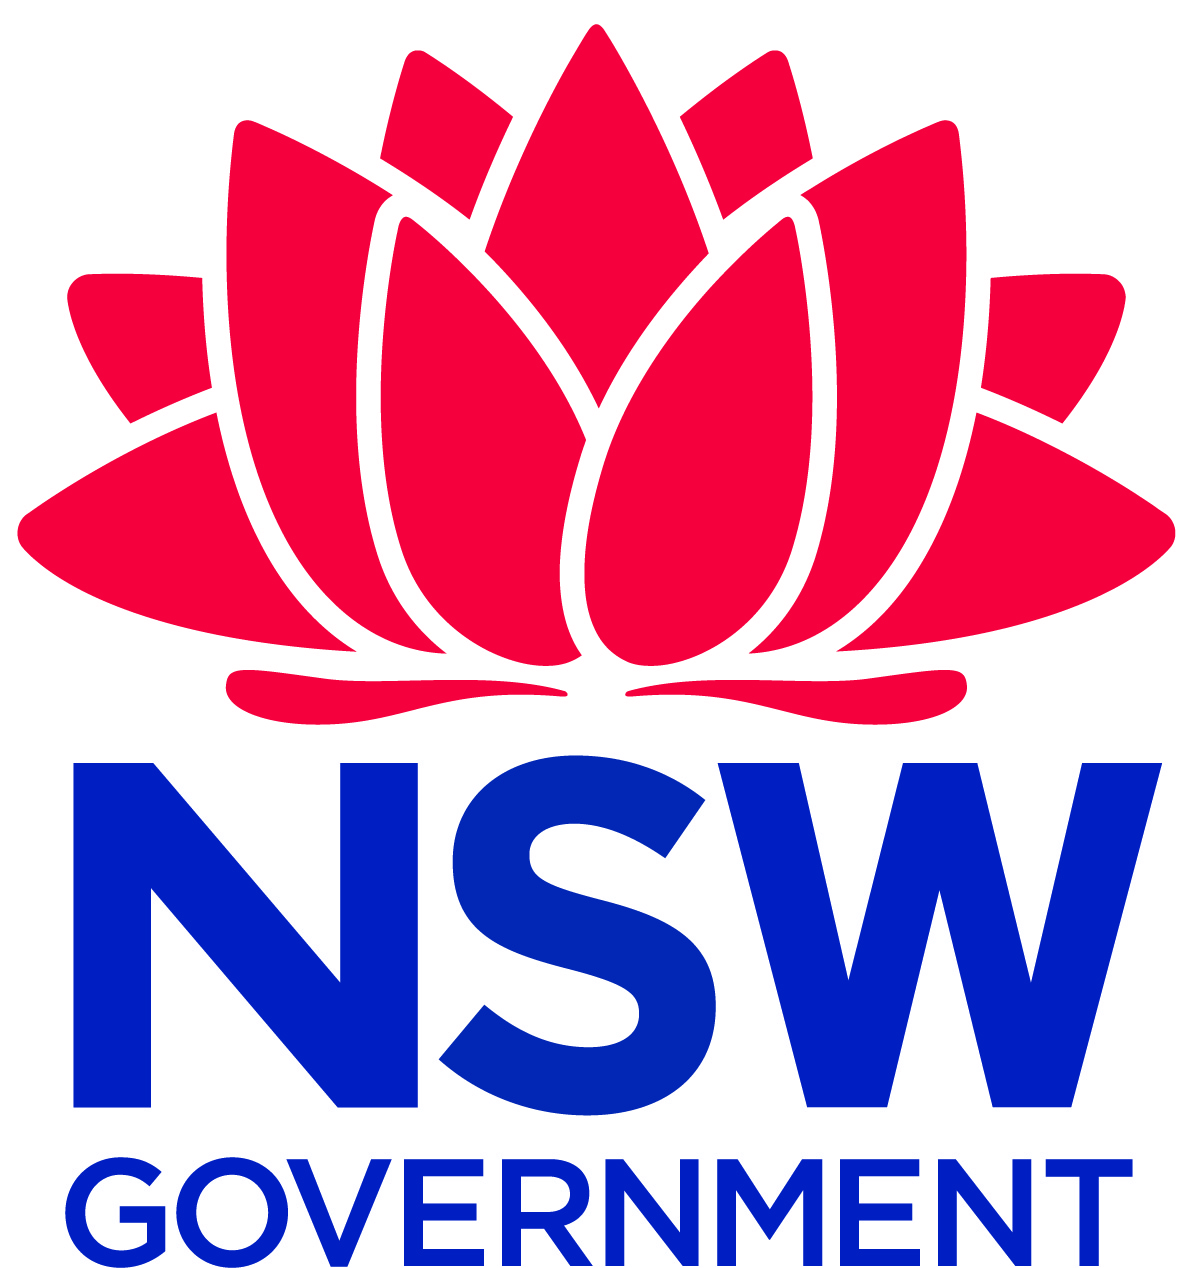 Waratah_NSWGovt_Two_Colour_HiRes.jpg